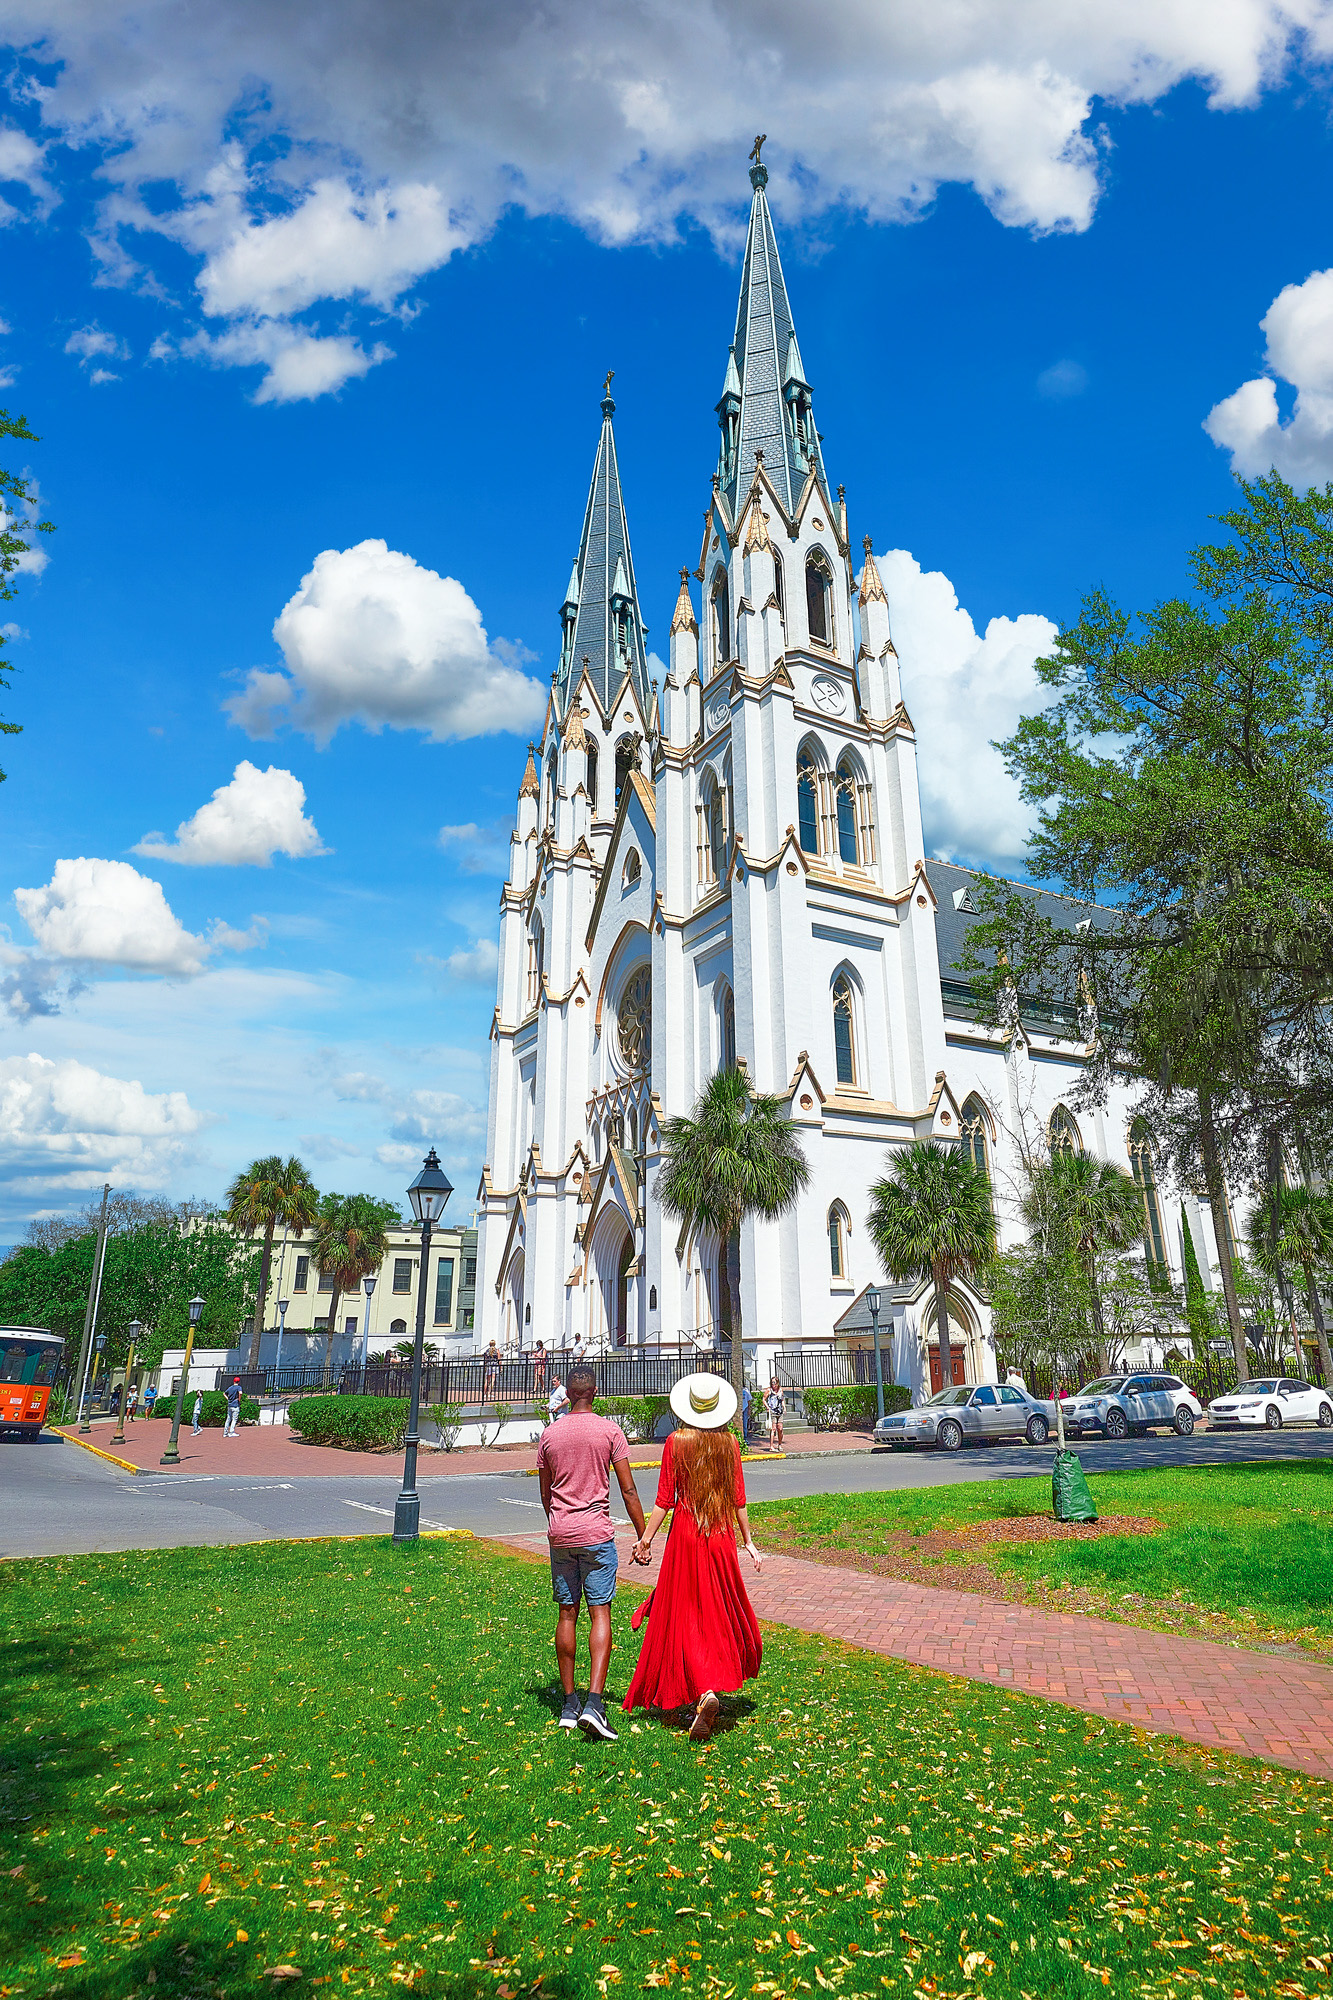 A man and woman holding hands in the grass looking at a large cathedral. The woman is standing in a bright red dress with her long hair down and wearing a cream colored sun hat looking up at the Cathedral Basilica of St. John The Baptist. The man is wearing a read heather shirt and denim blue shorts and is also looking up at the Cathedral. The Cathedral is very large and cream with an intricate Gothic Revival architectural design. The trimmings of the church are gold.